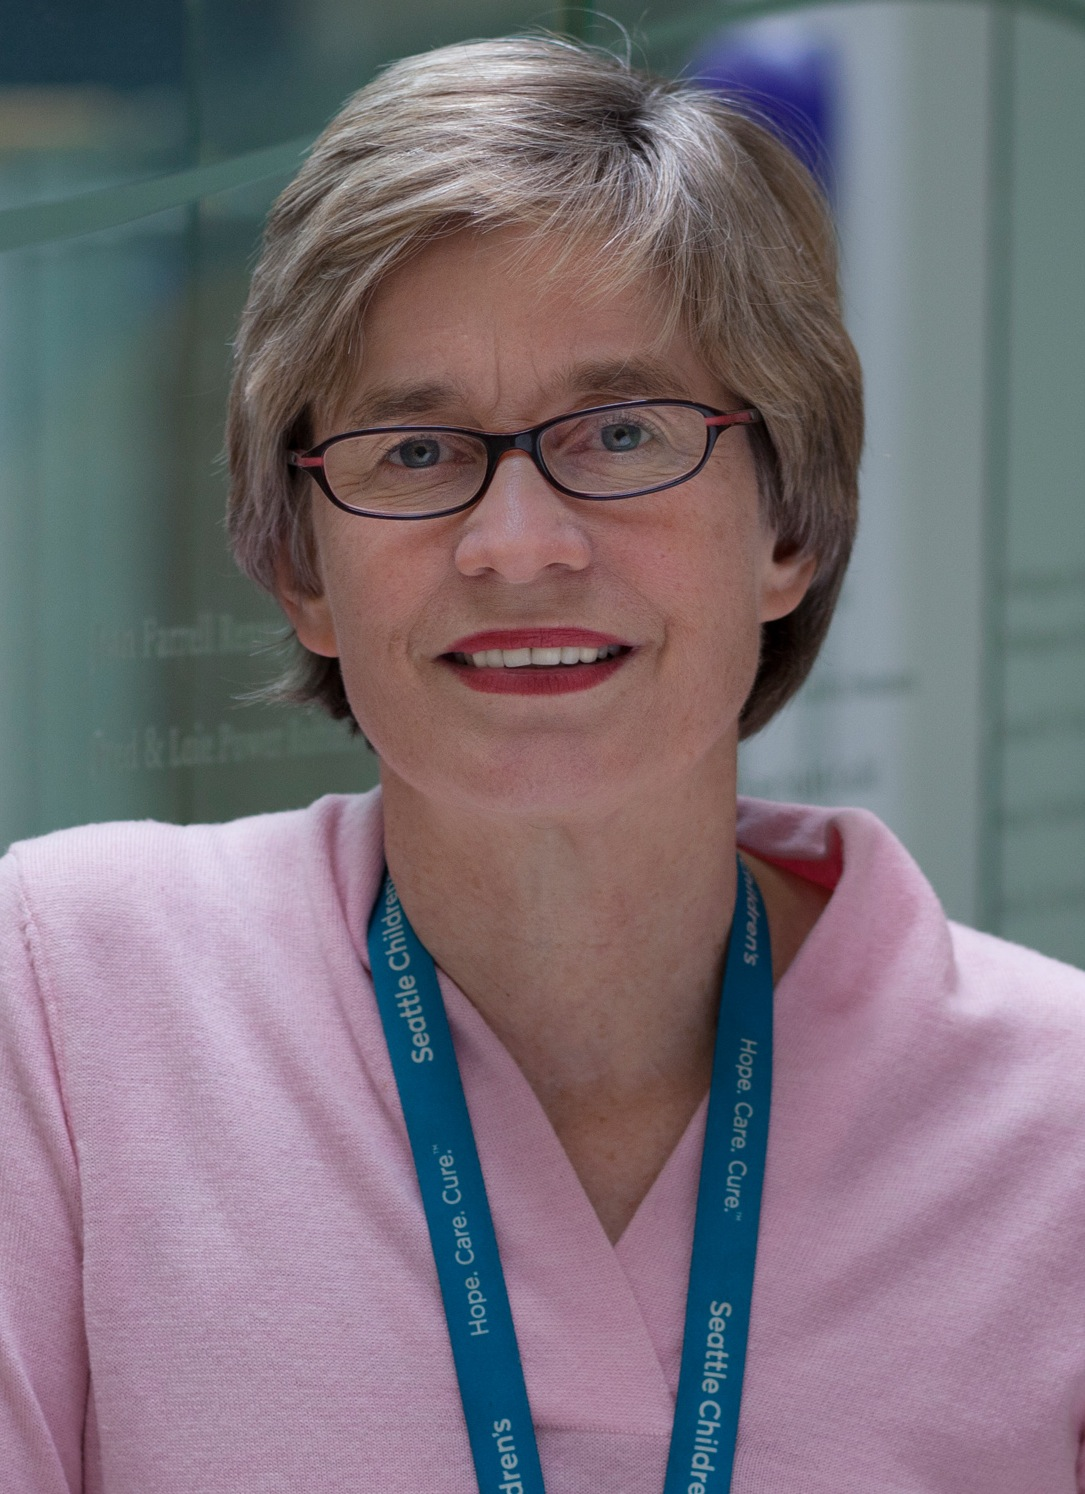 Dr. Bonnie Ramsey, a member of the Kidney Research Institute's Scientific Advisory Committee.